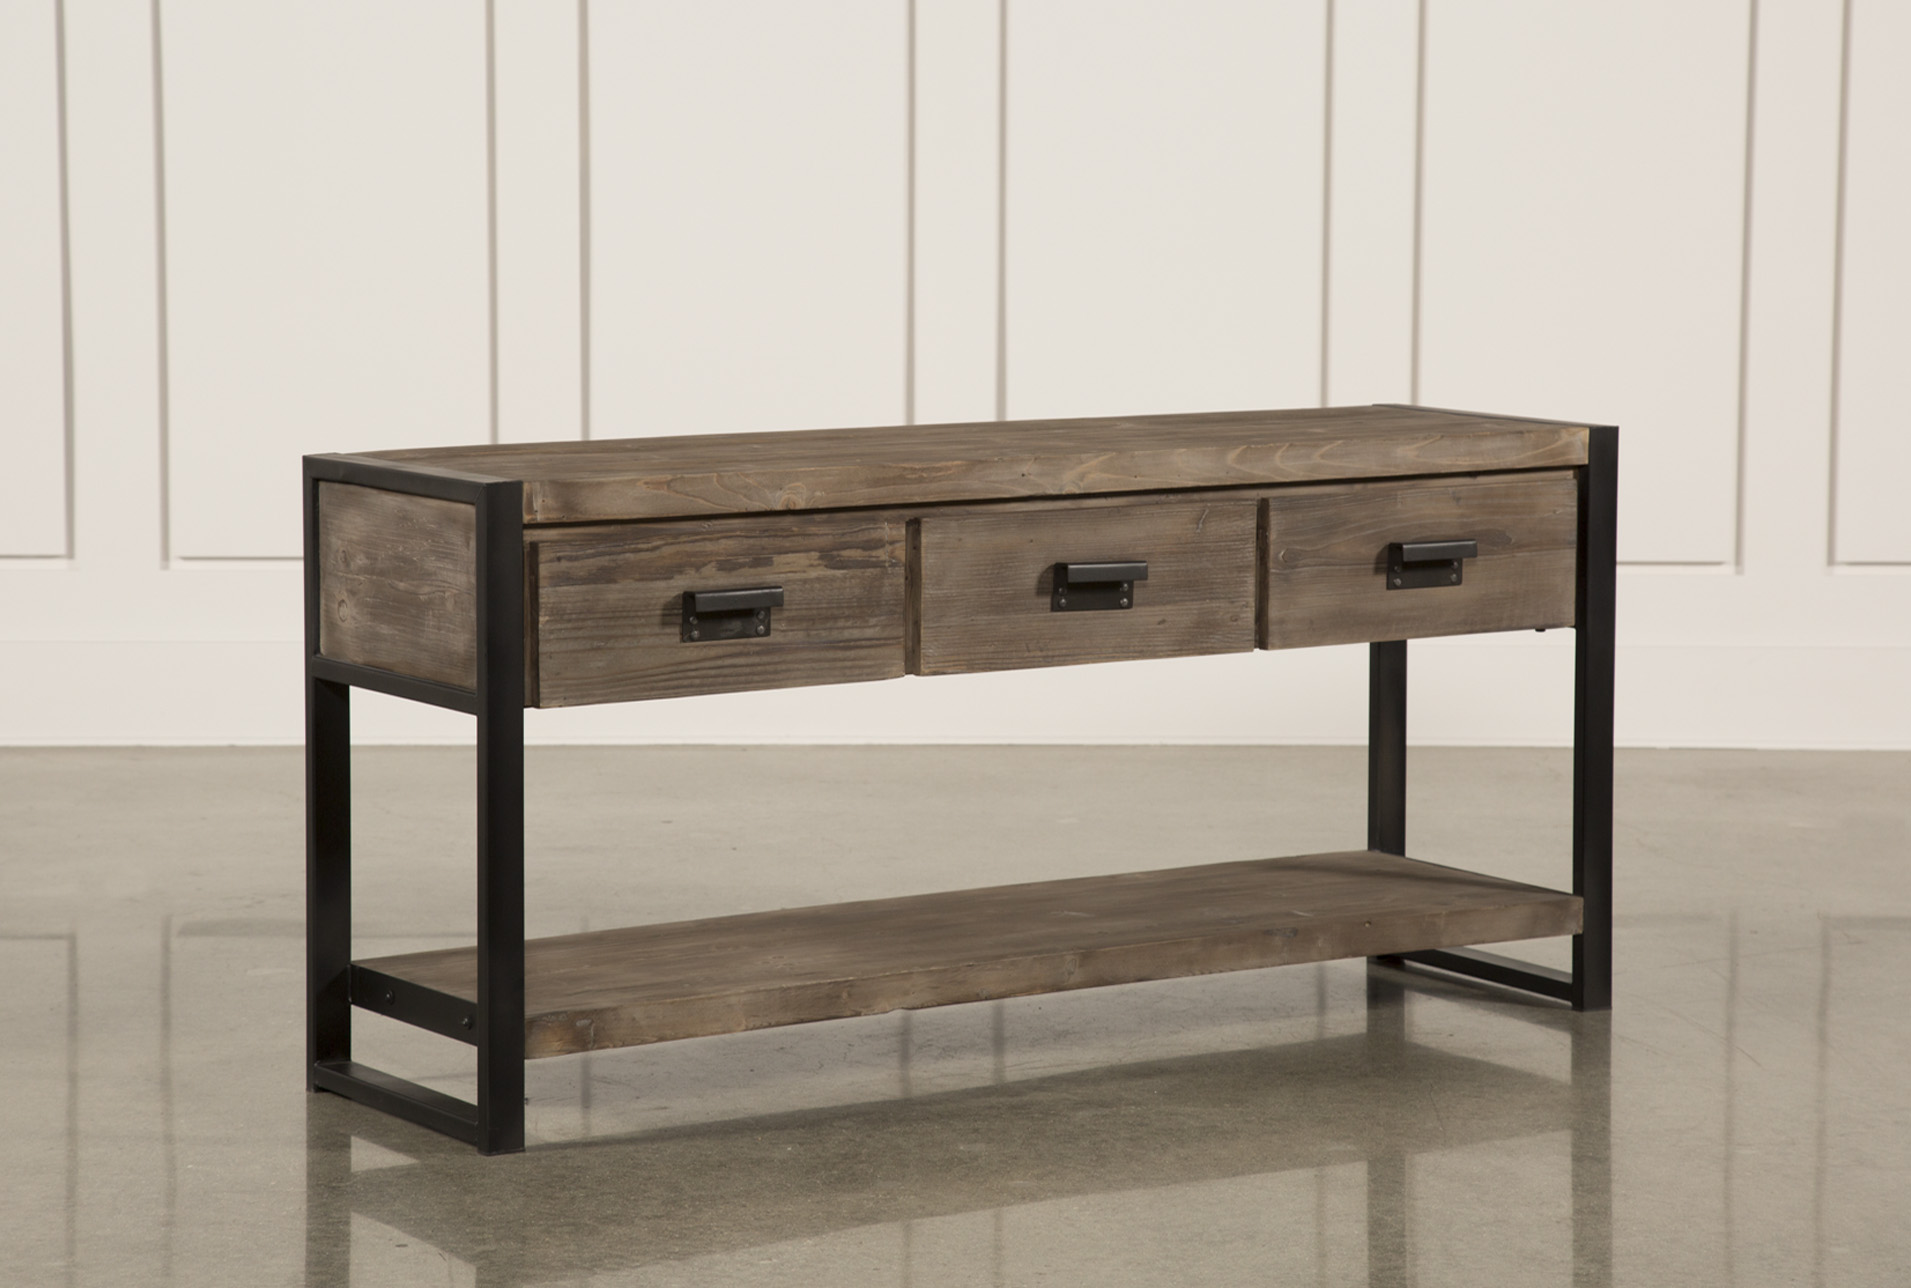 Prescott Sofa Table (Qty: 1) Has Been Successfully Added To Your Cart.